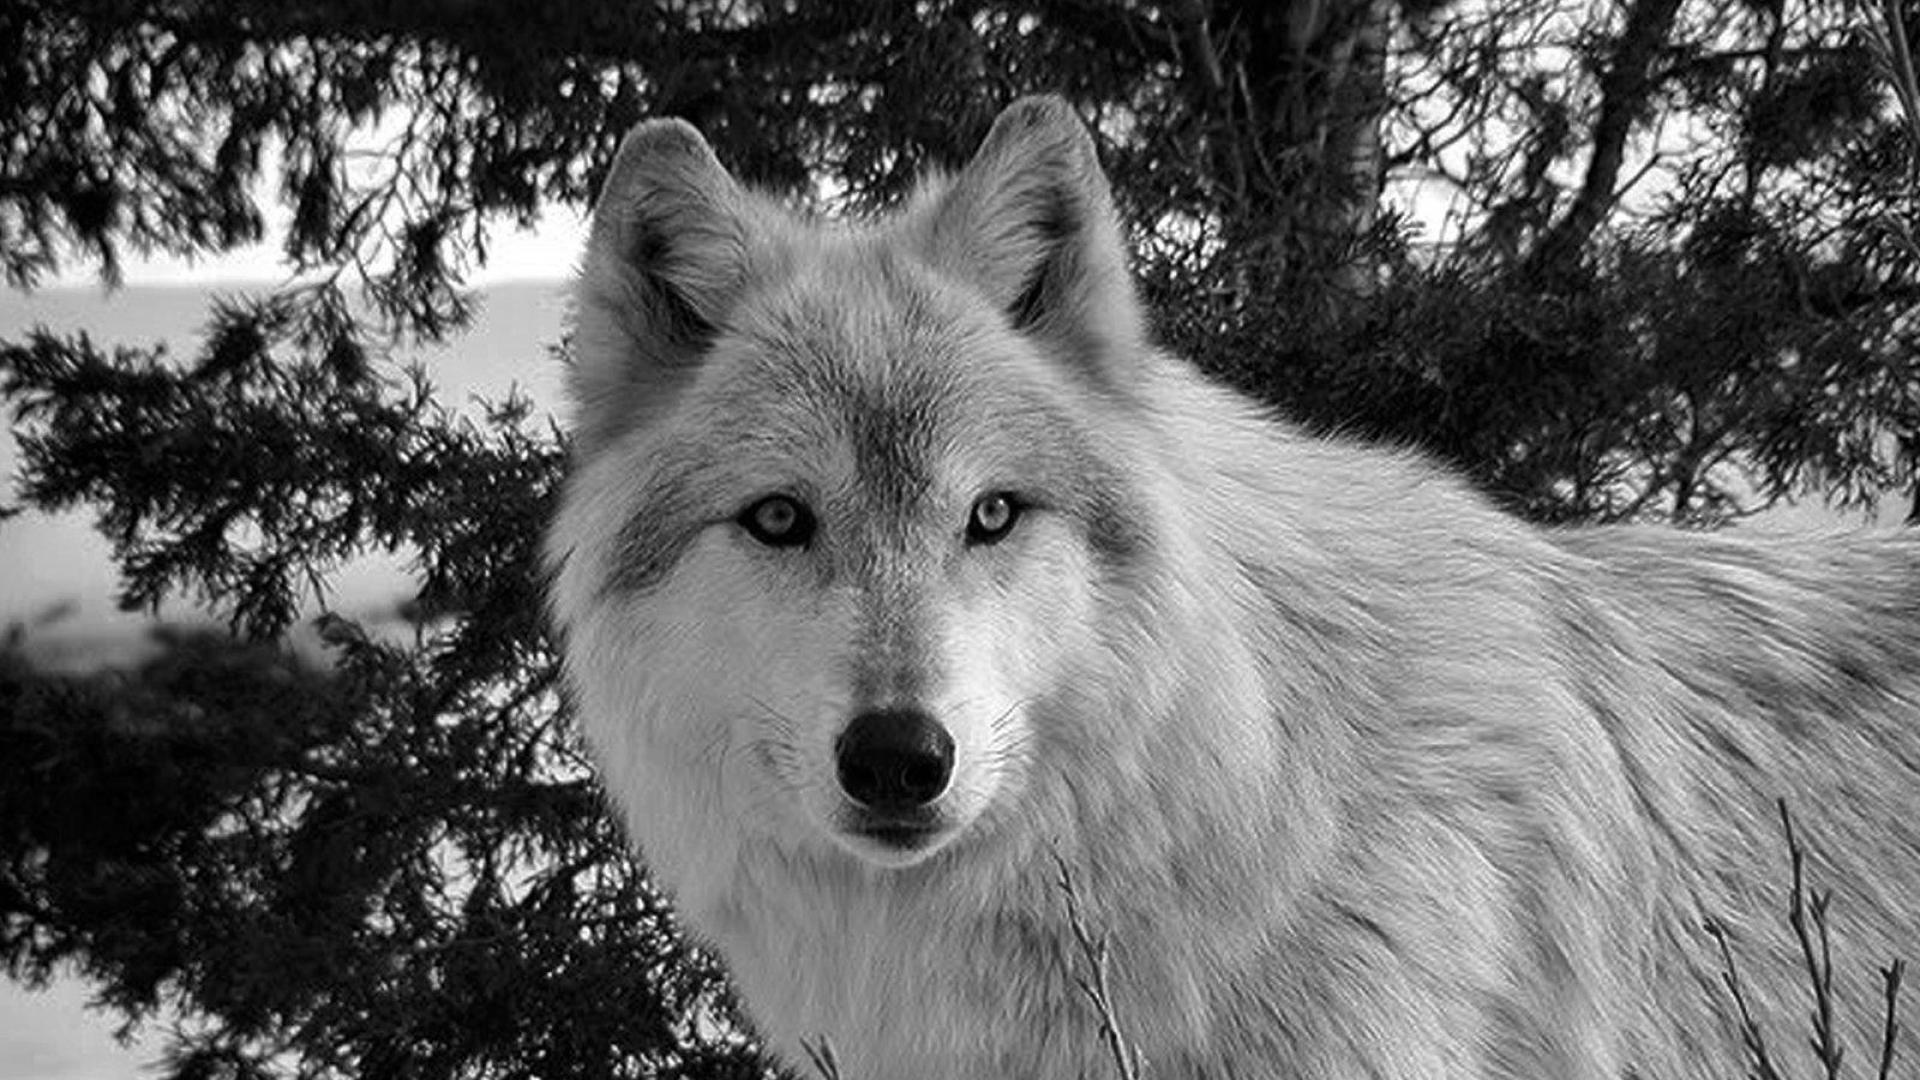 Evil White Wolf Wallpapers Top Free Evil White Wolf Backgrounds Wallpaperaccess